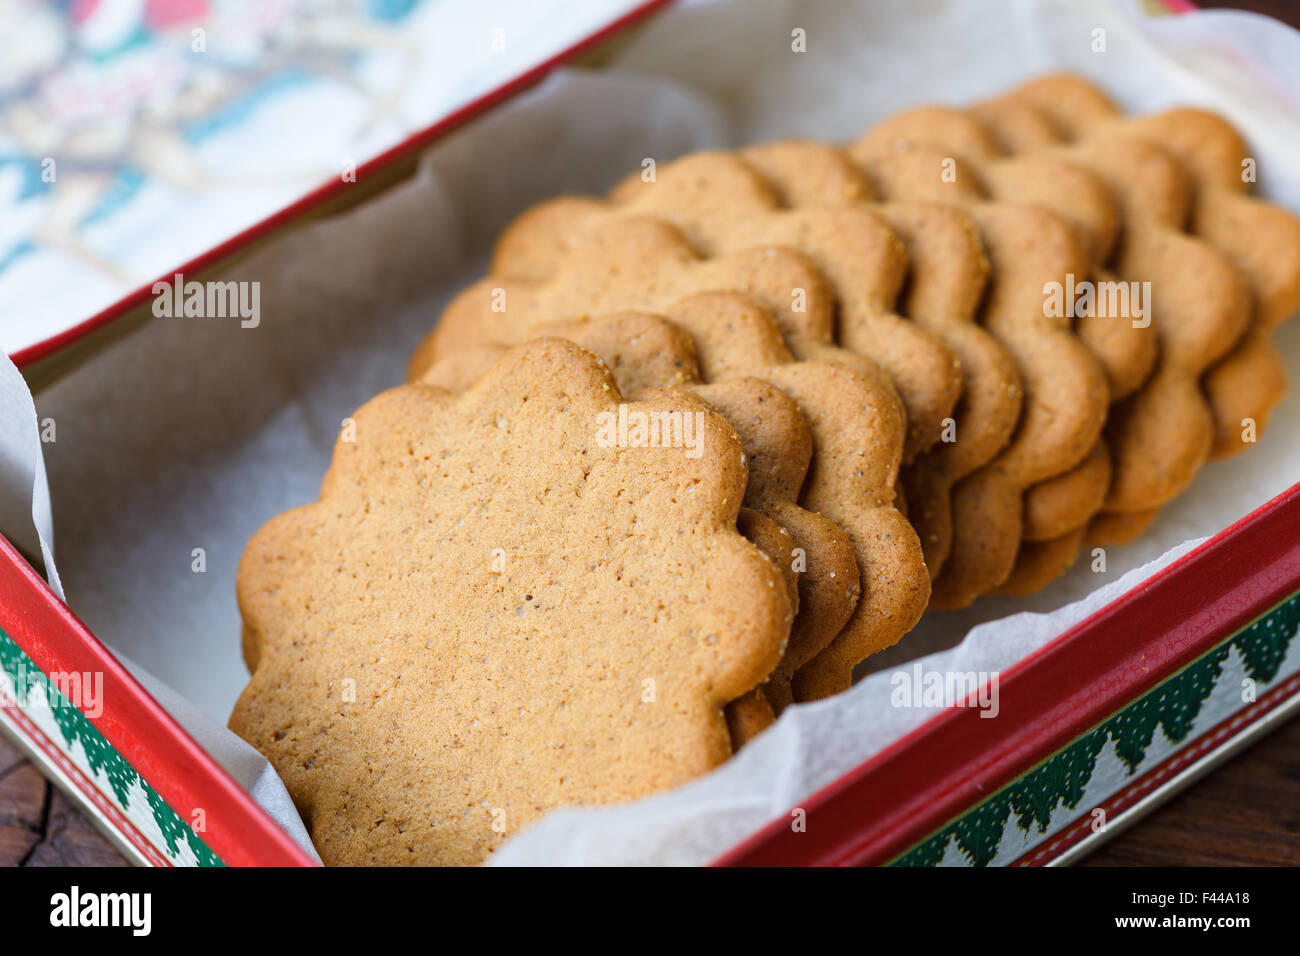 Pepparkakor (Swedish Ginger Cookies) - Stock Image